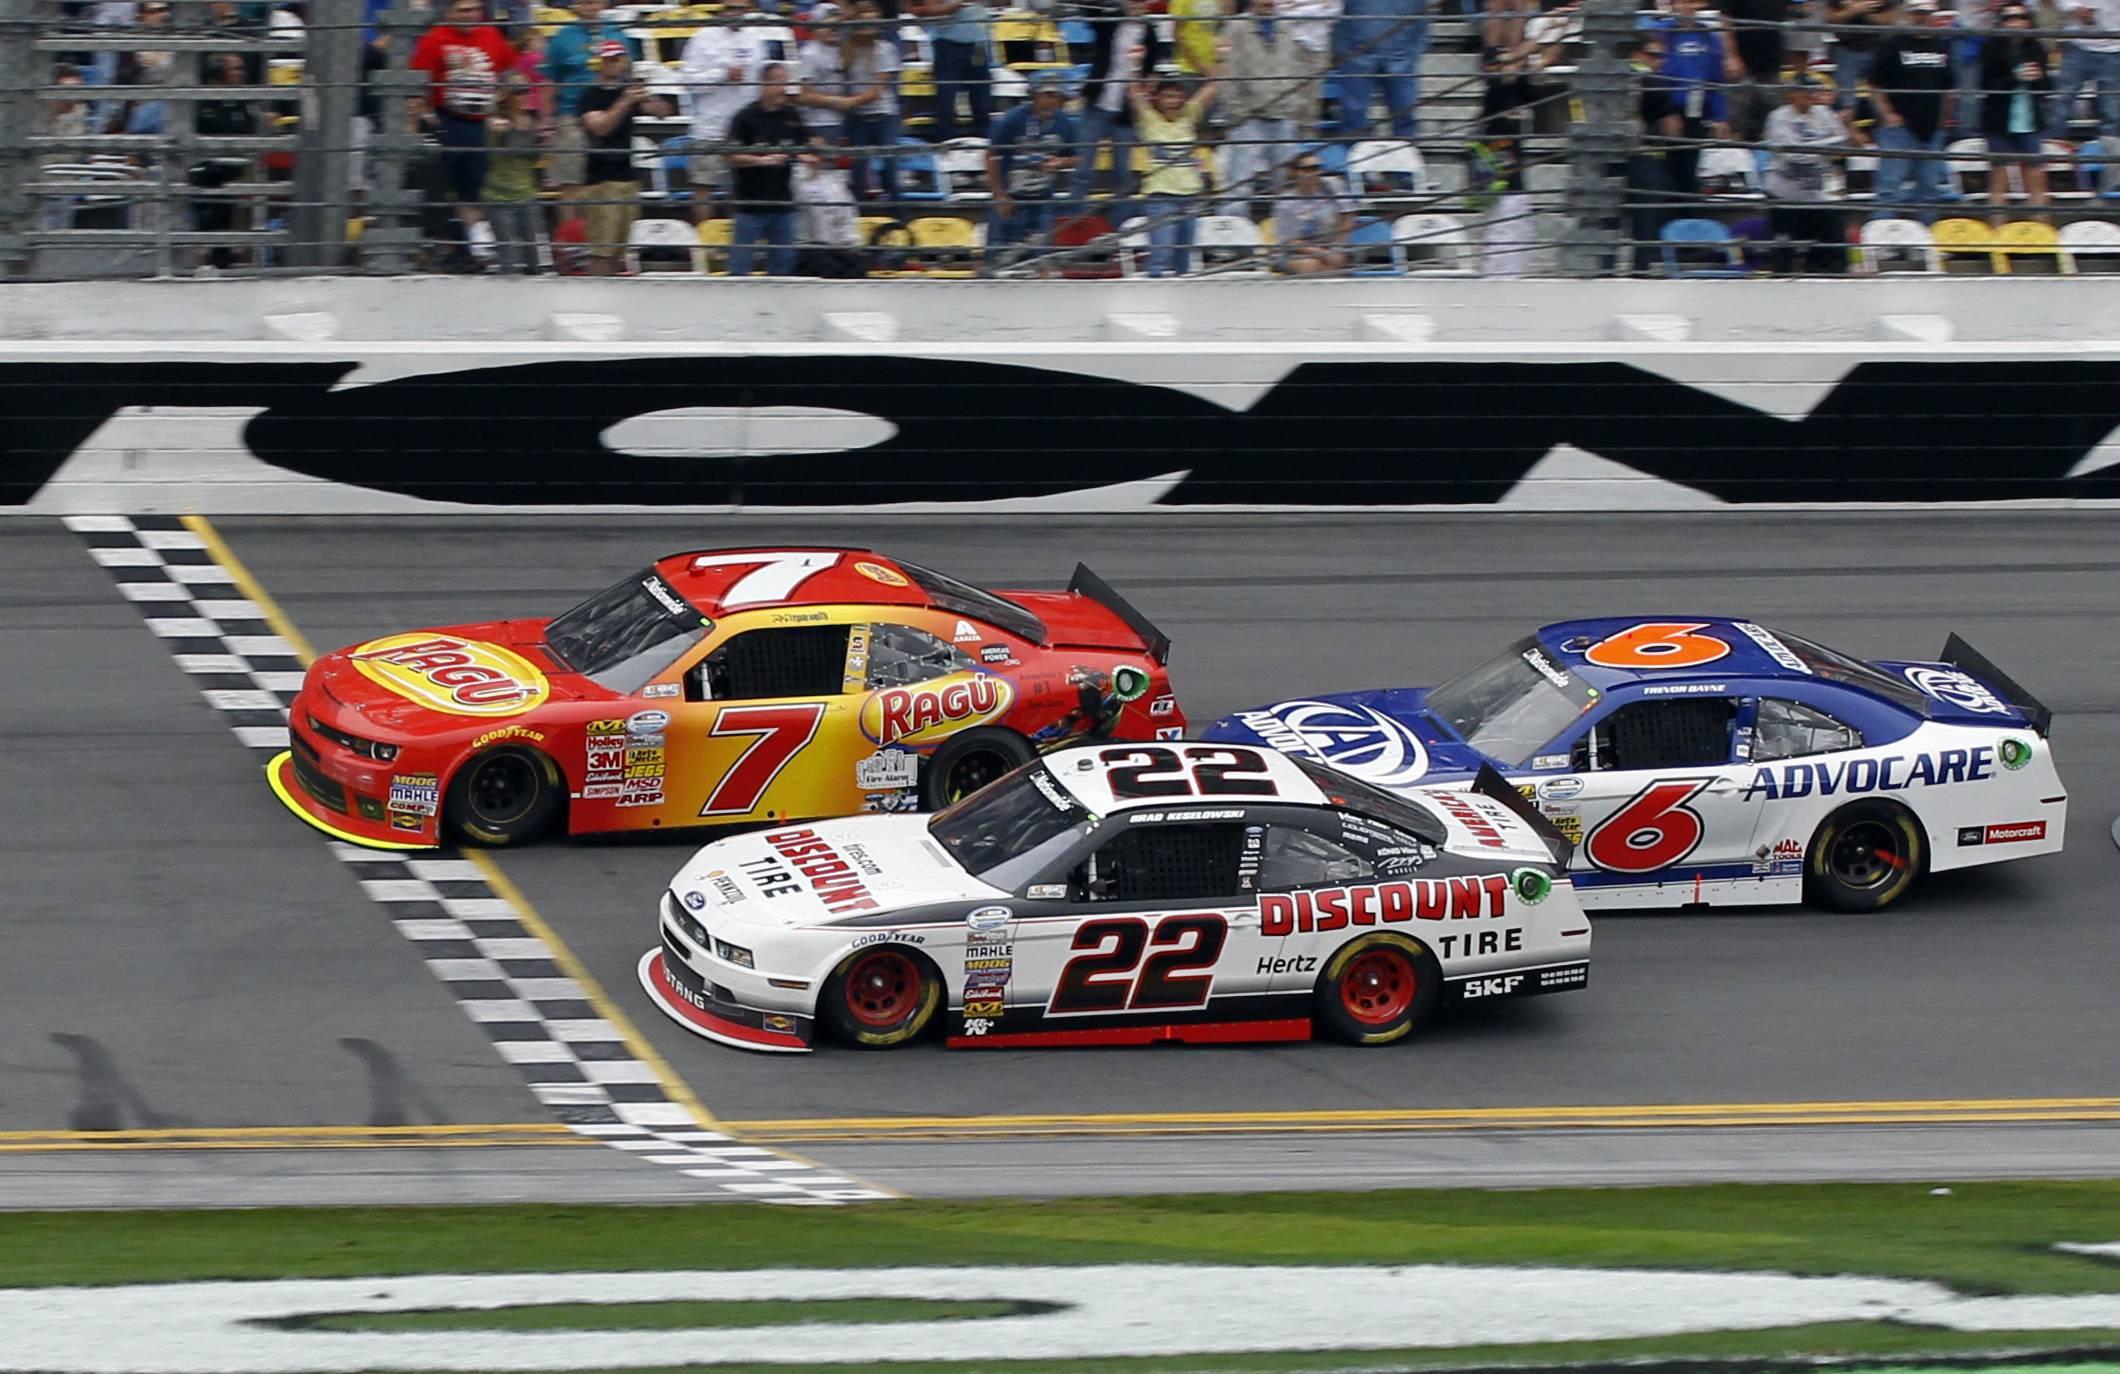 Regan Smith (7) crosses the finish line ahead of Brad Keselowski (22) and Trevor Bayne (6) to win the NASCAR Nationwide Series auto race at Daytona International Speedway in Daytona Beach, Fla., Saturday.